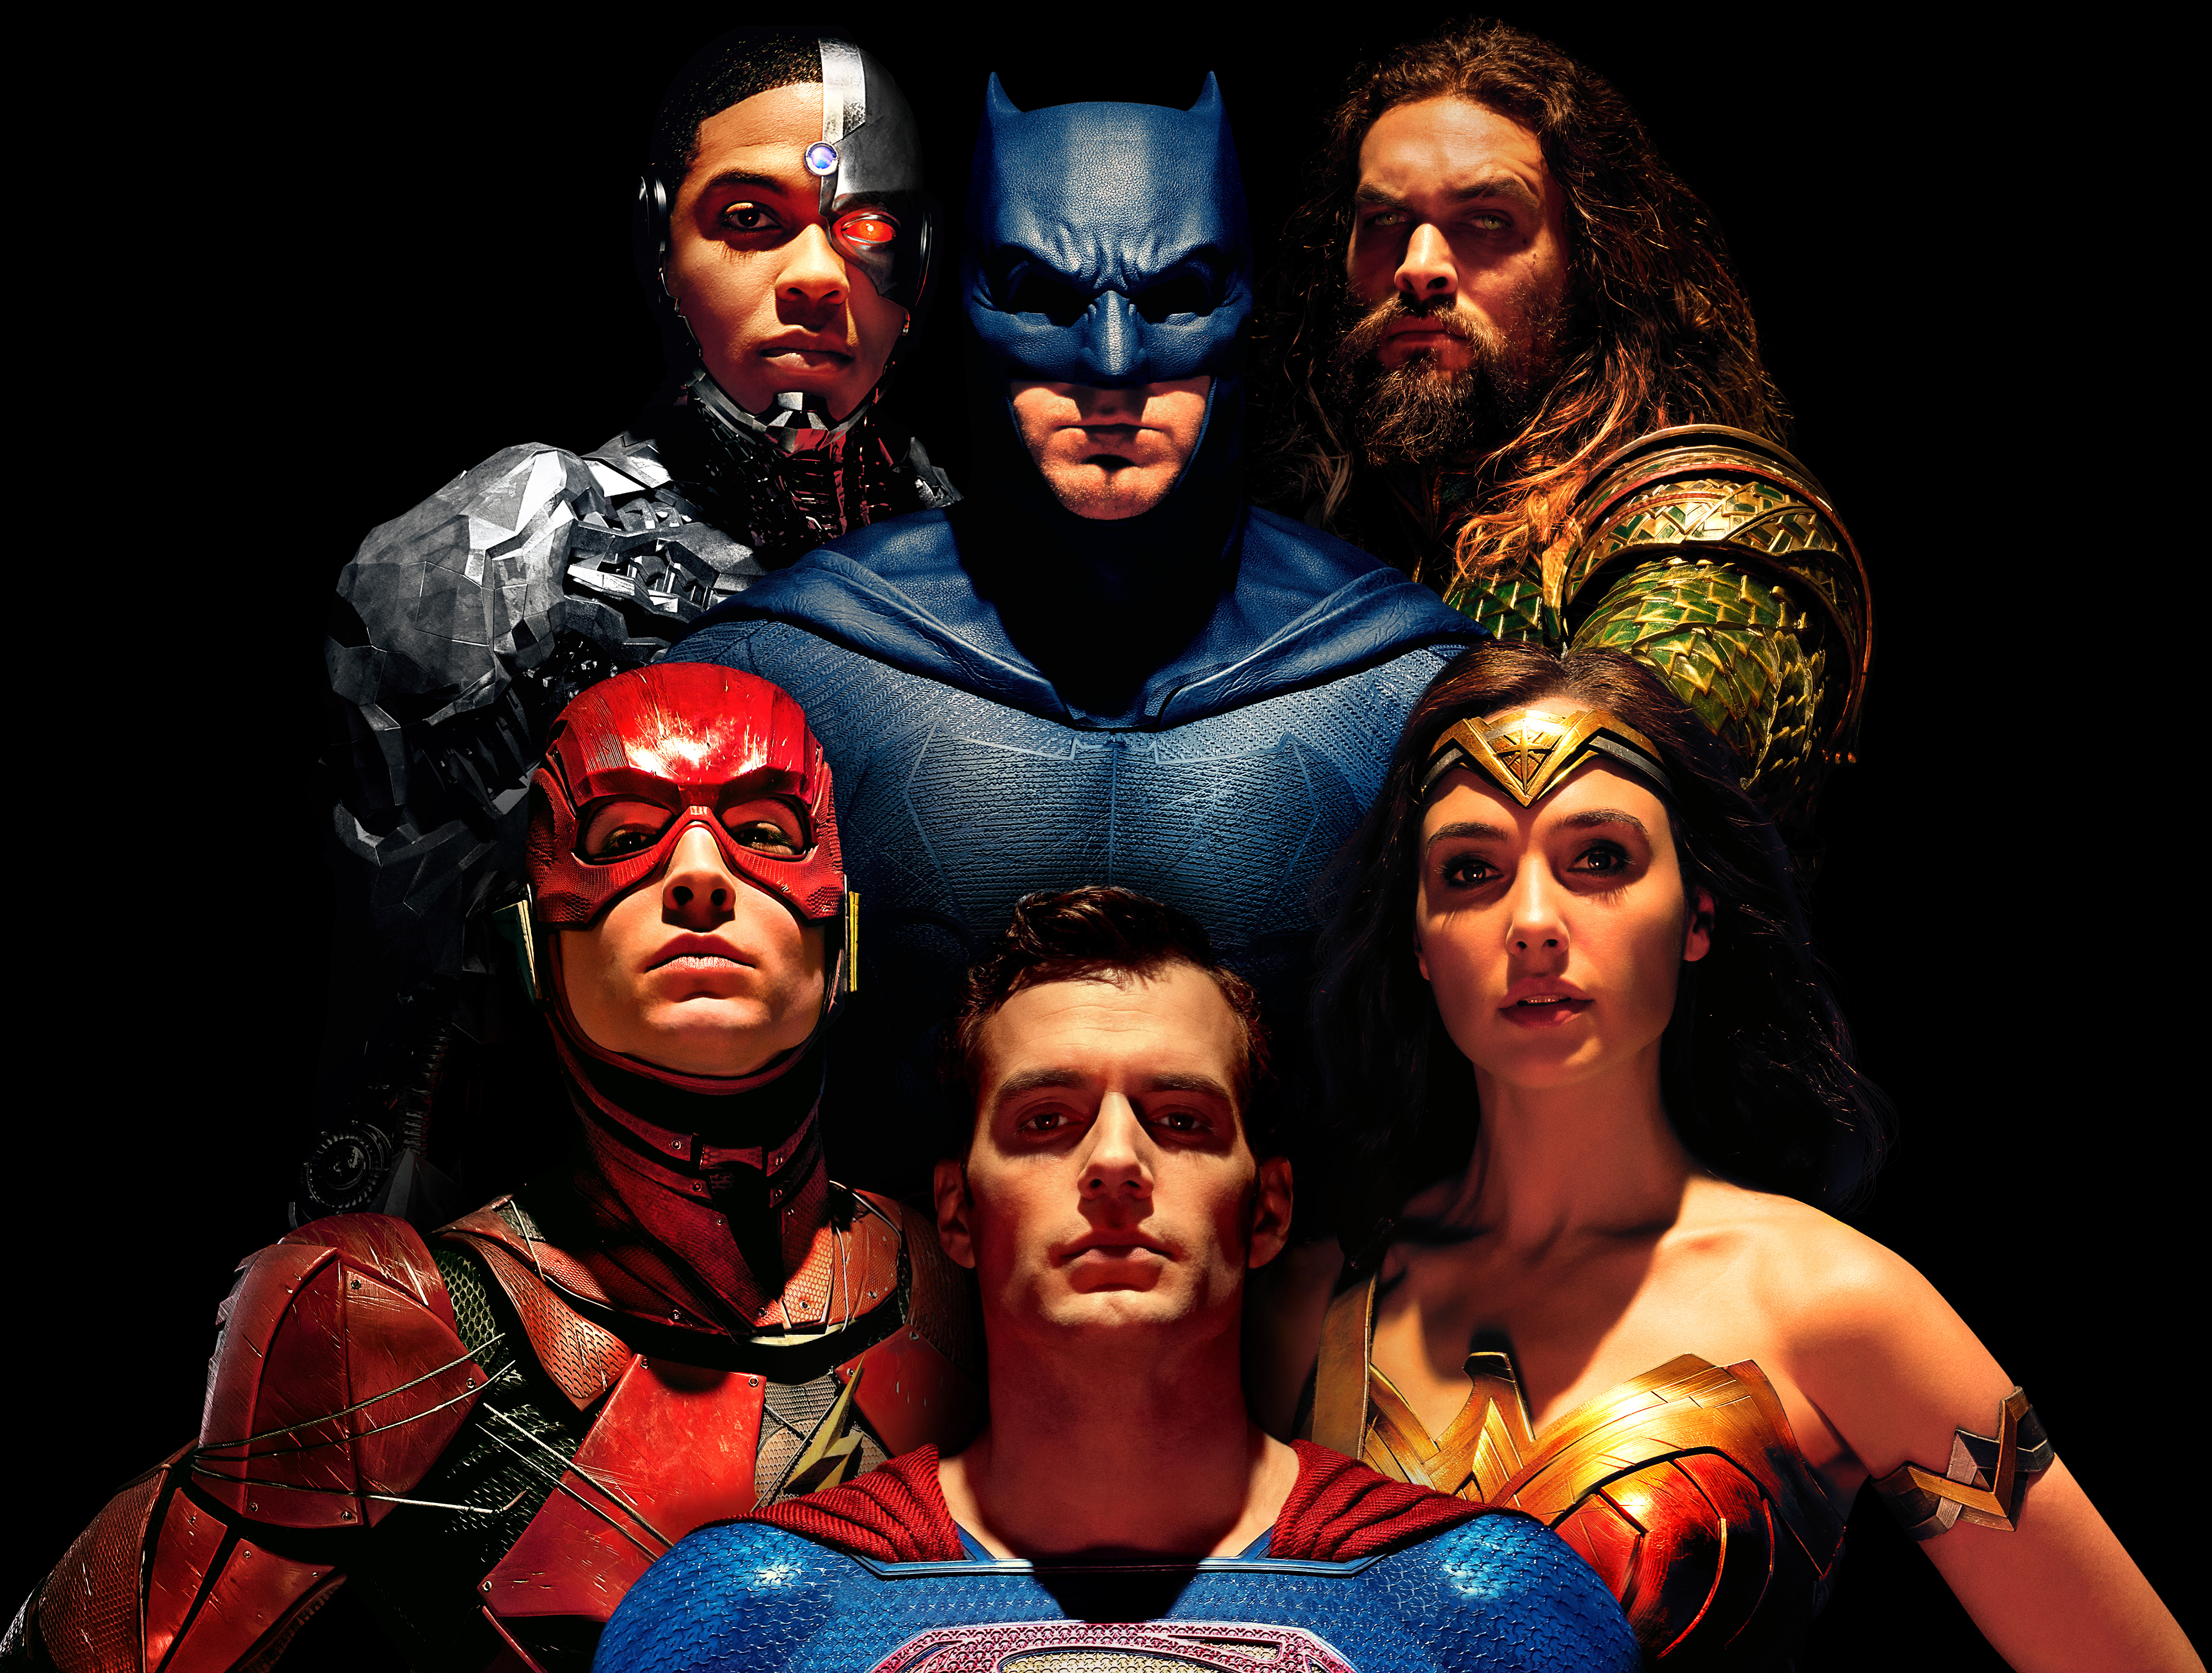 Justice League Movie Hd Movies 4k Wallpapers Images: Justice League 5k, HD Movies, 4k Wallpapers, Images